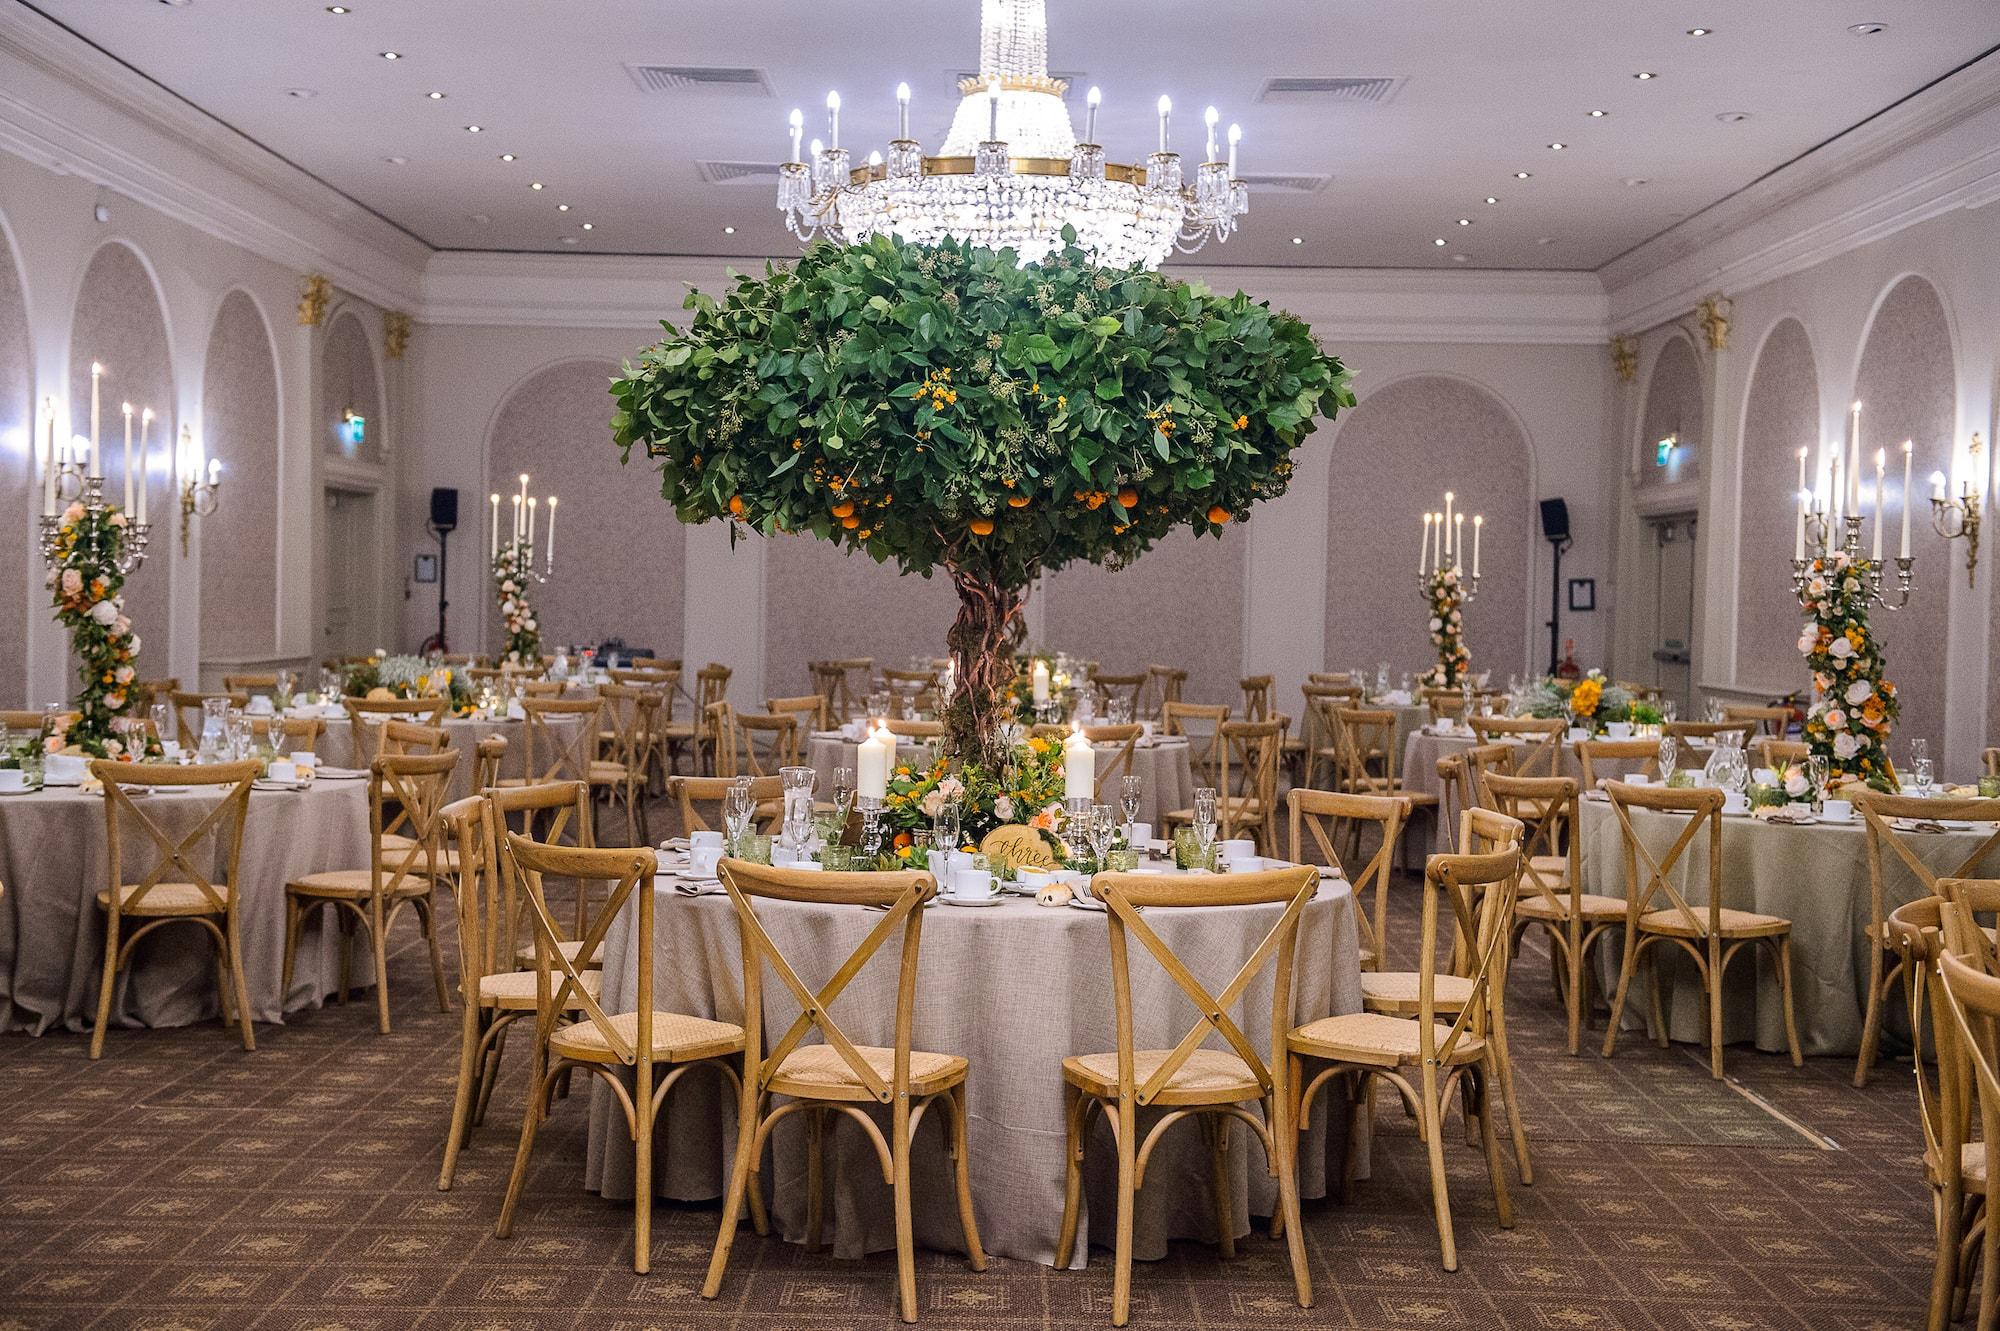 larry_walshe_floral_design_weddings_orange_tree-min